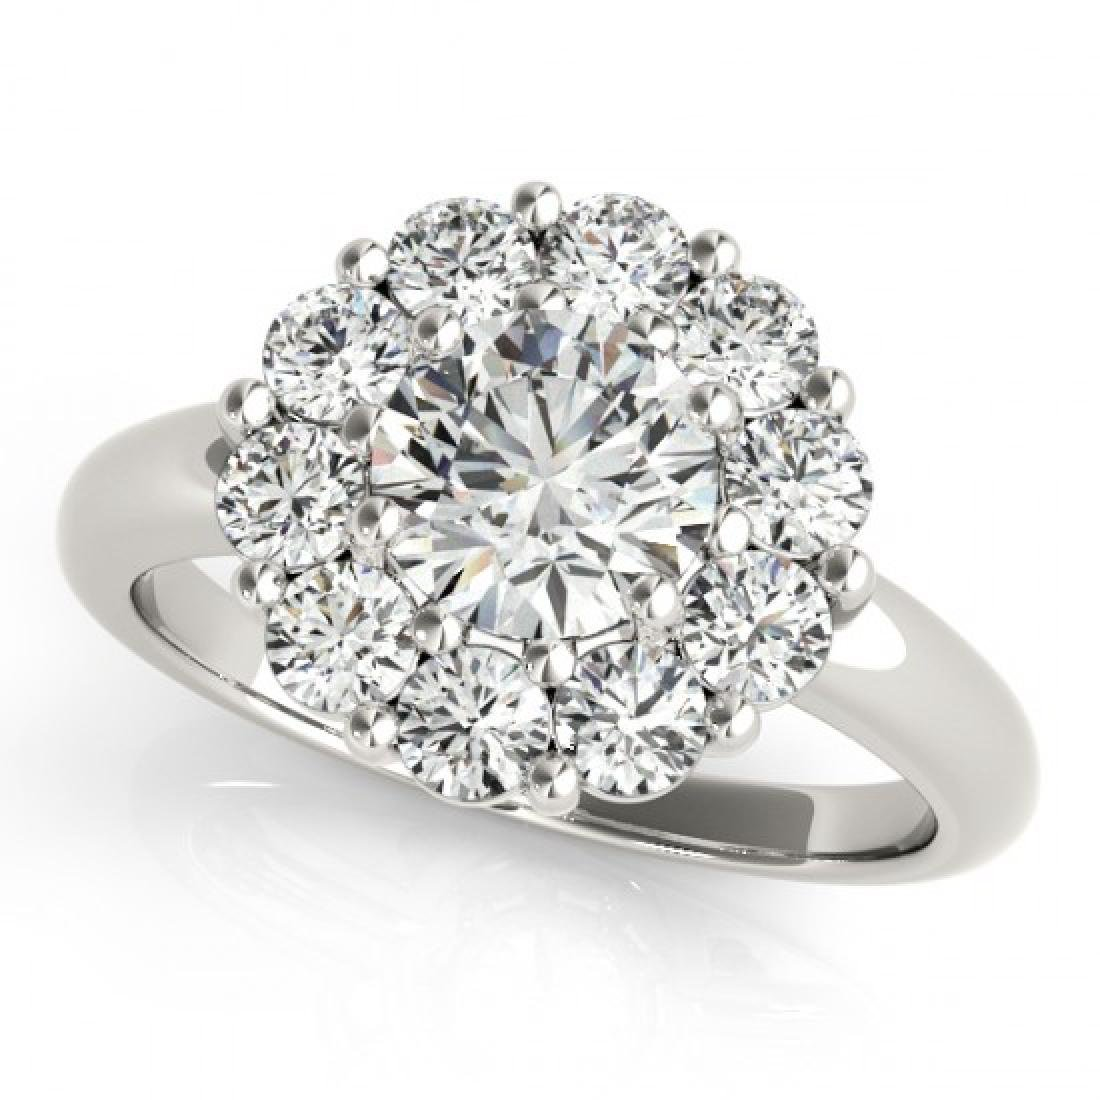 1.38 CTW Certified VS/SI Diamond Solitaire Halo Ring